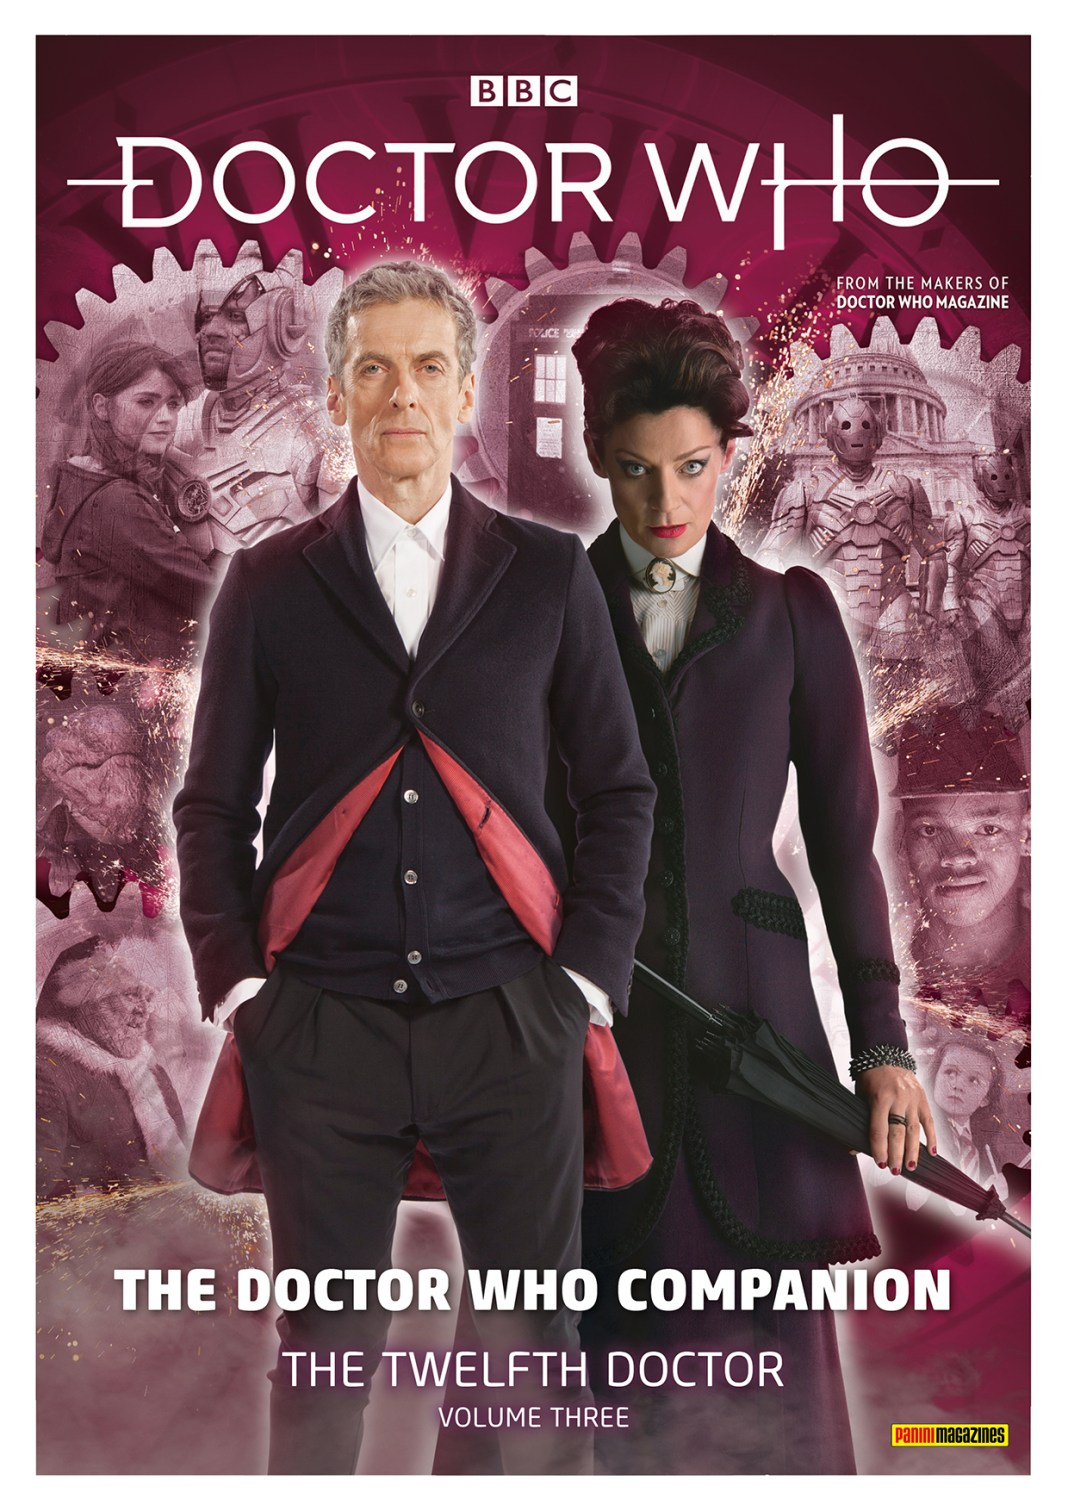 Doctor Who Magazine's The Twelfth Doctor Companion Volume 3 (c) Panini